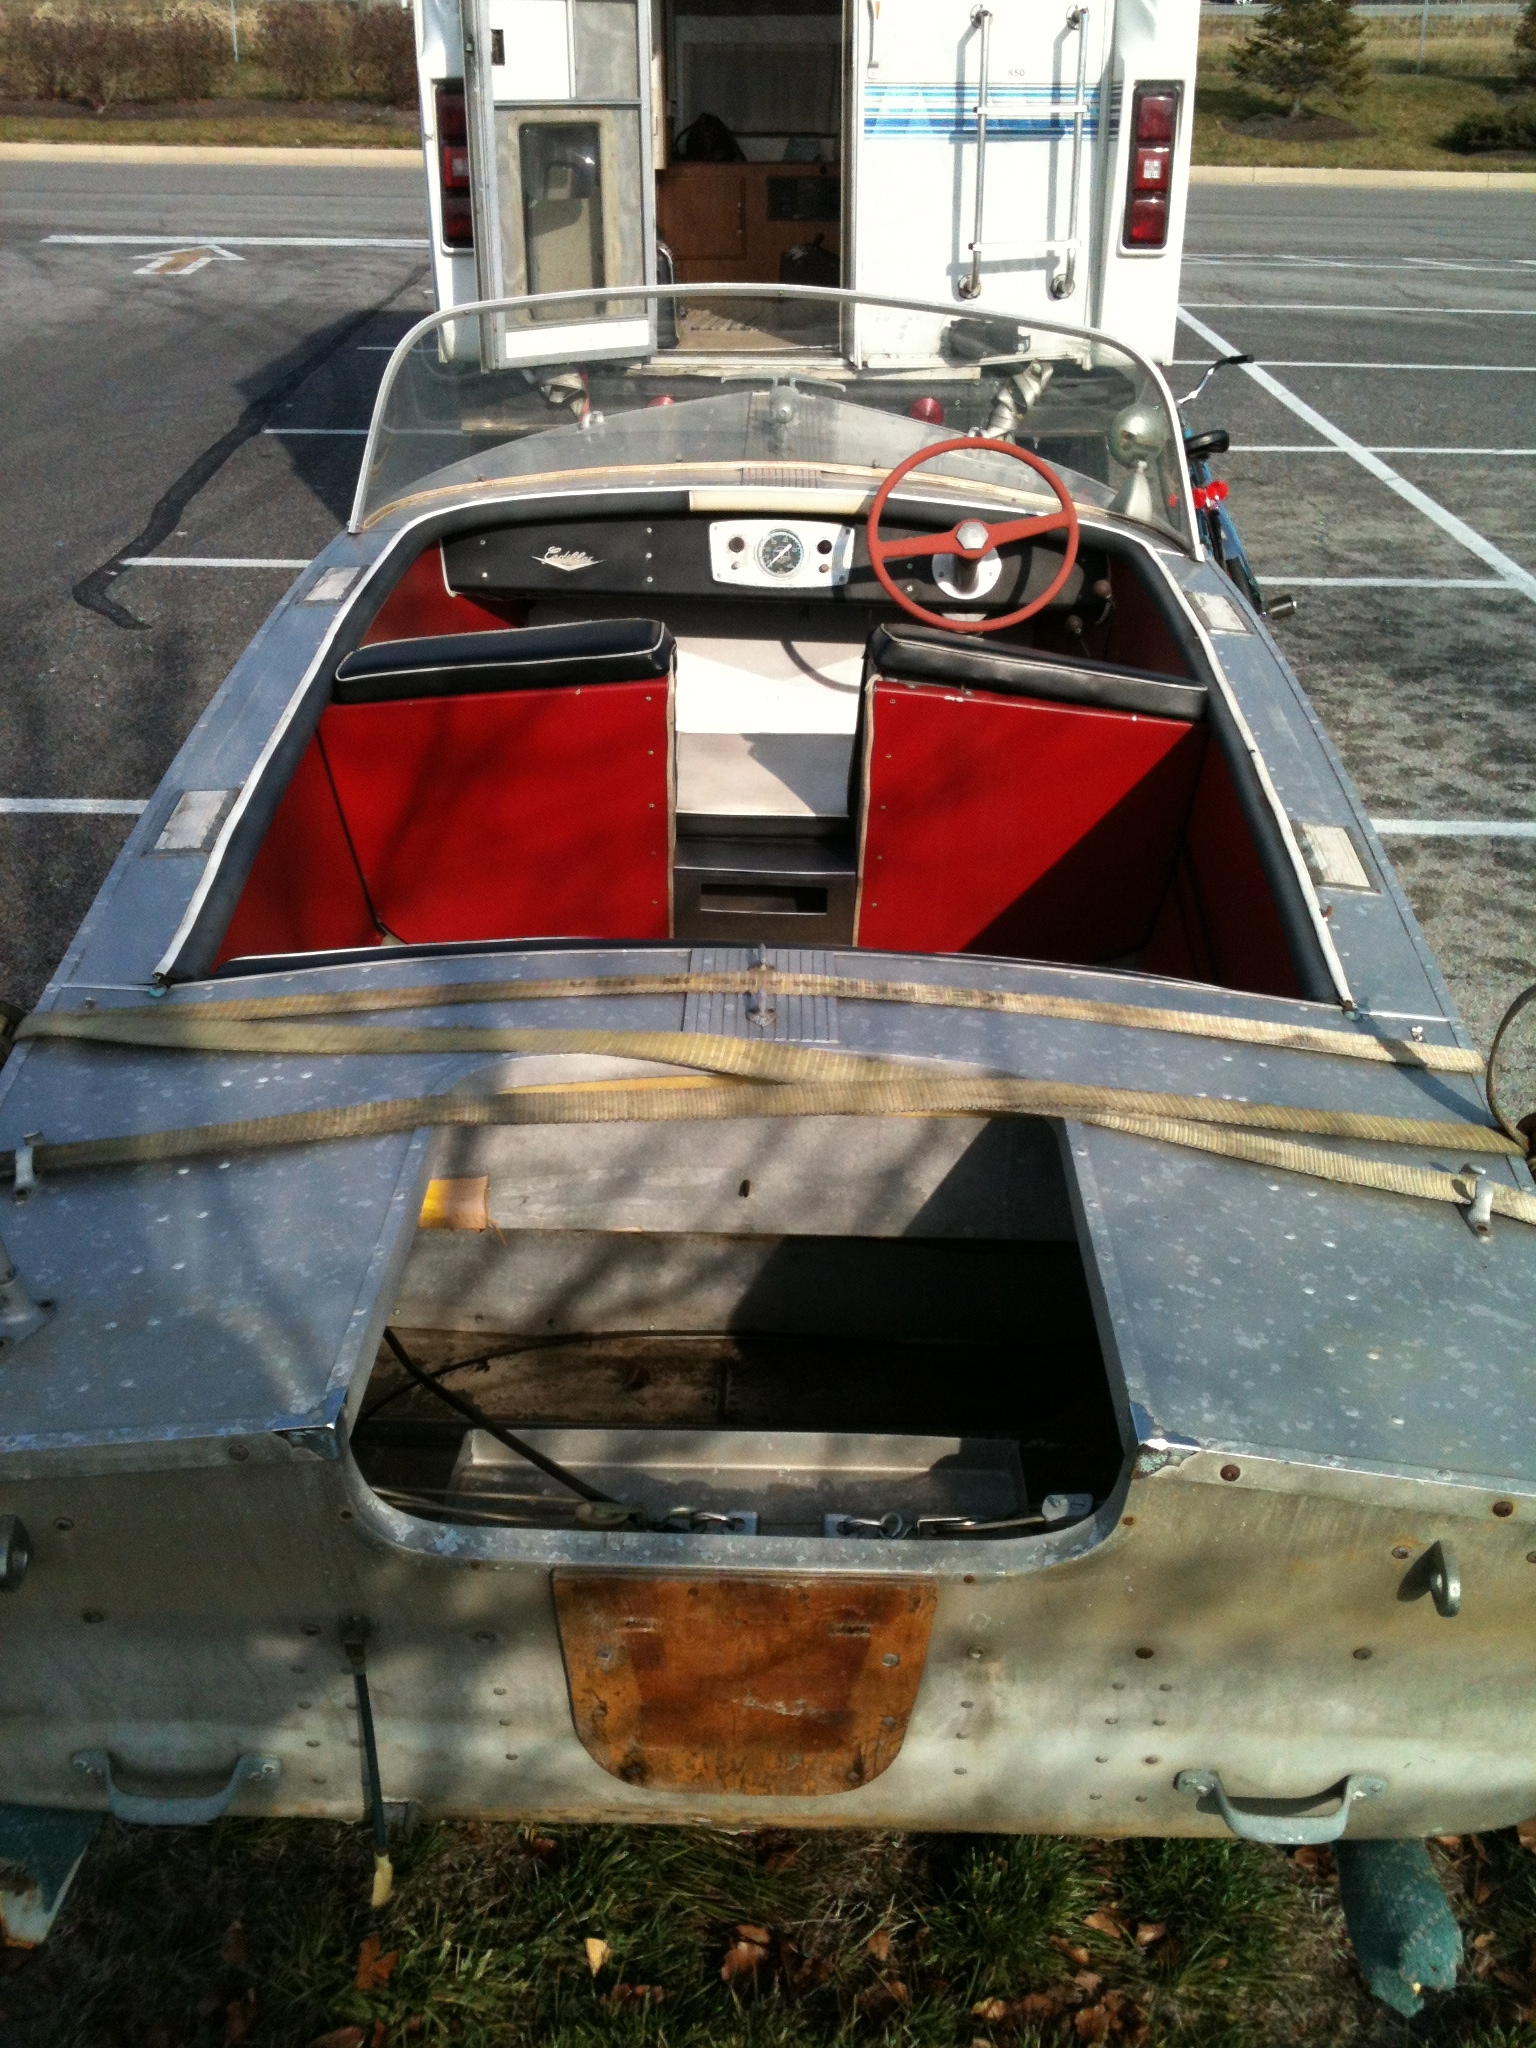 This message was sent to brian fogarty at his wolverine website by theresa broadwater our cadillac story we have owned an aluminum starcraft runabout for